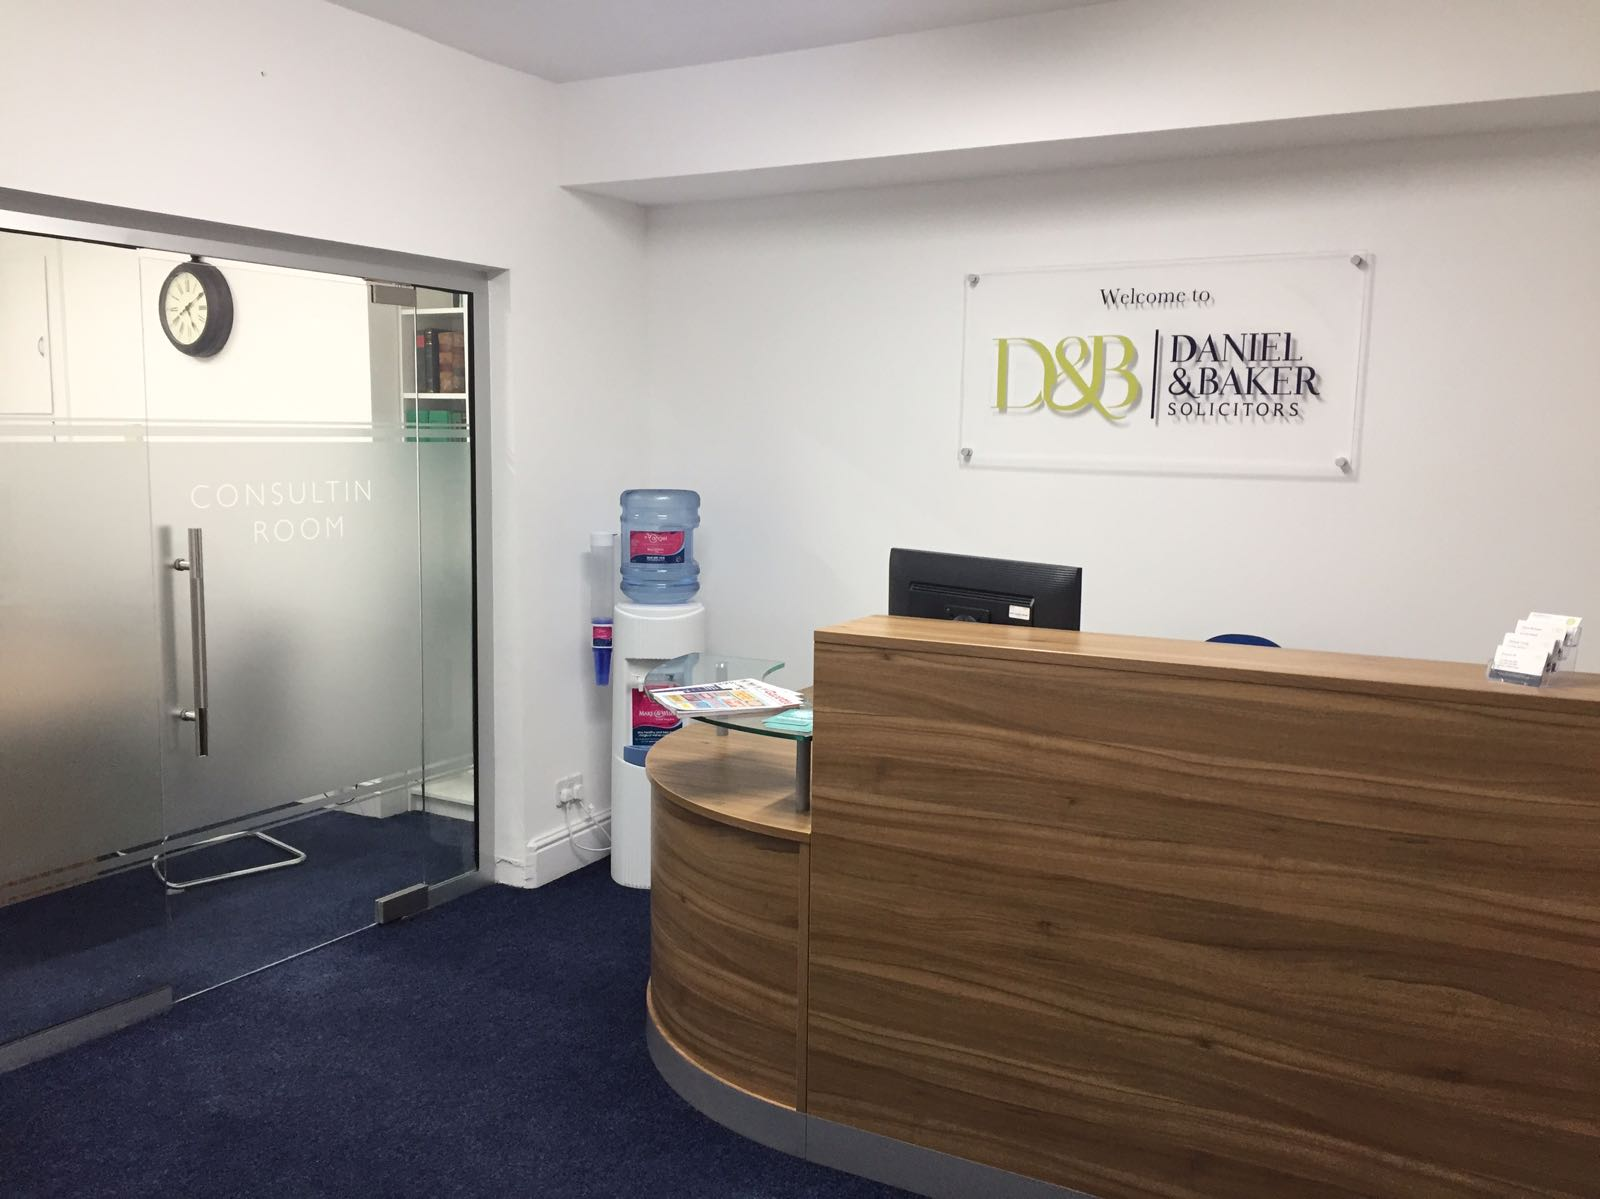 Daniel and Baker Solicitors Oldham